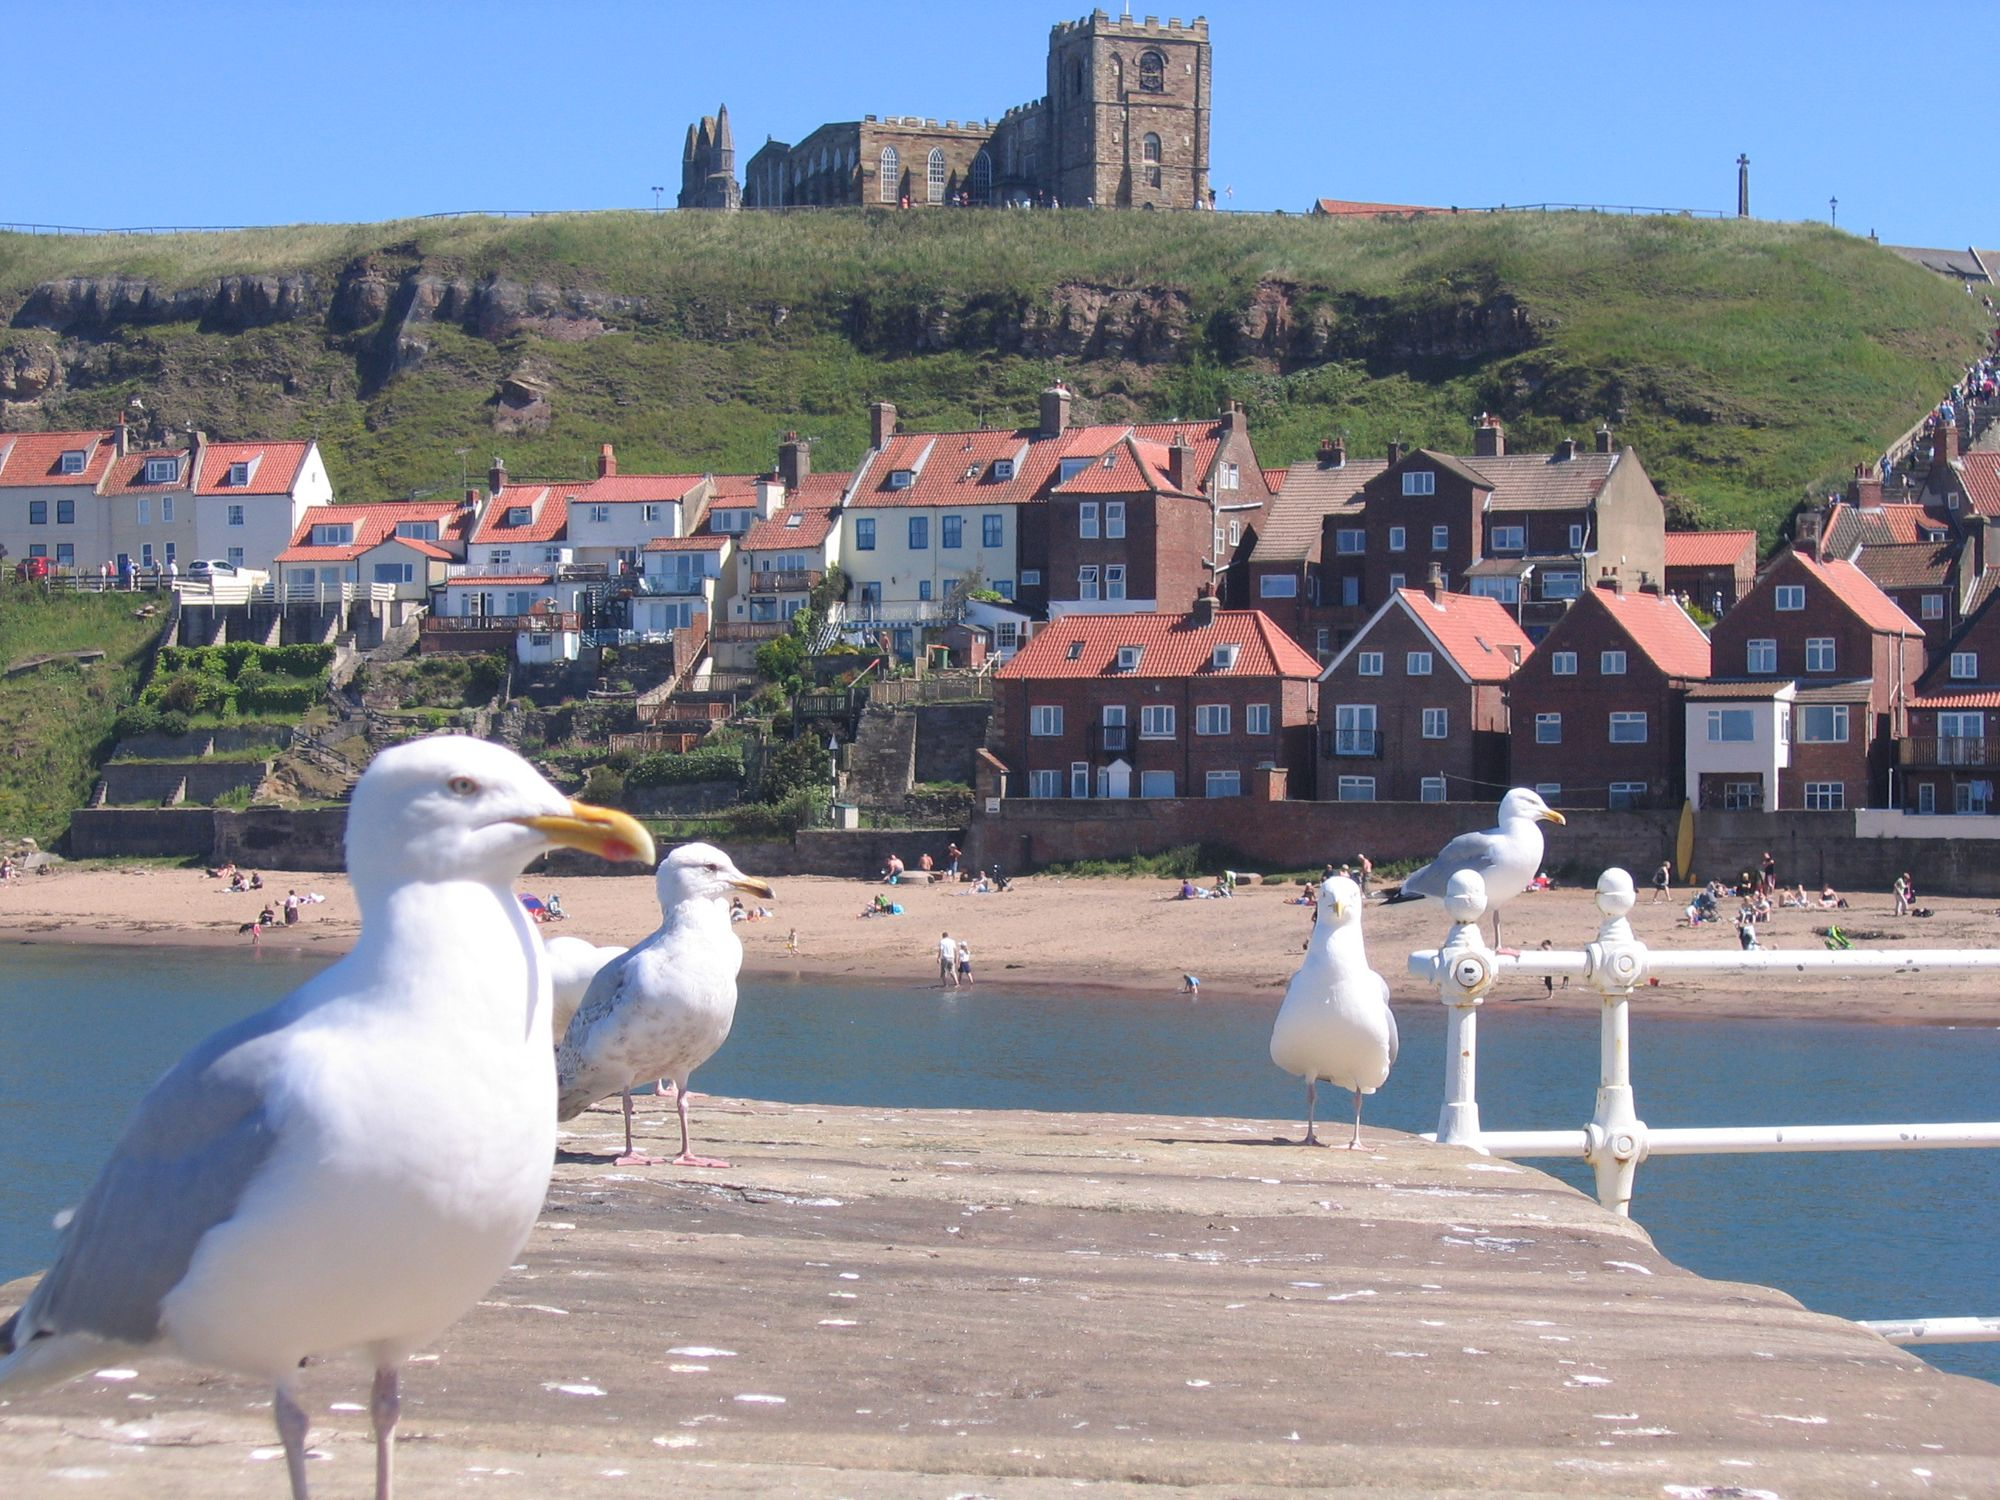 Hotels, Cottages, B&Bs & Glamping in Whitby & the North Yorkshire Coast